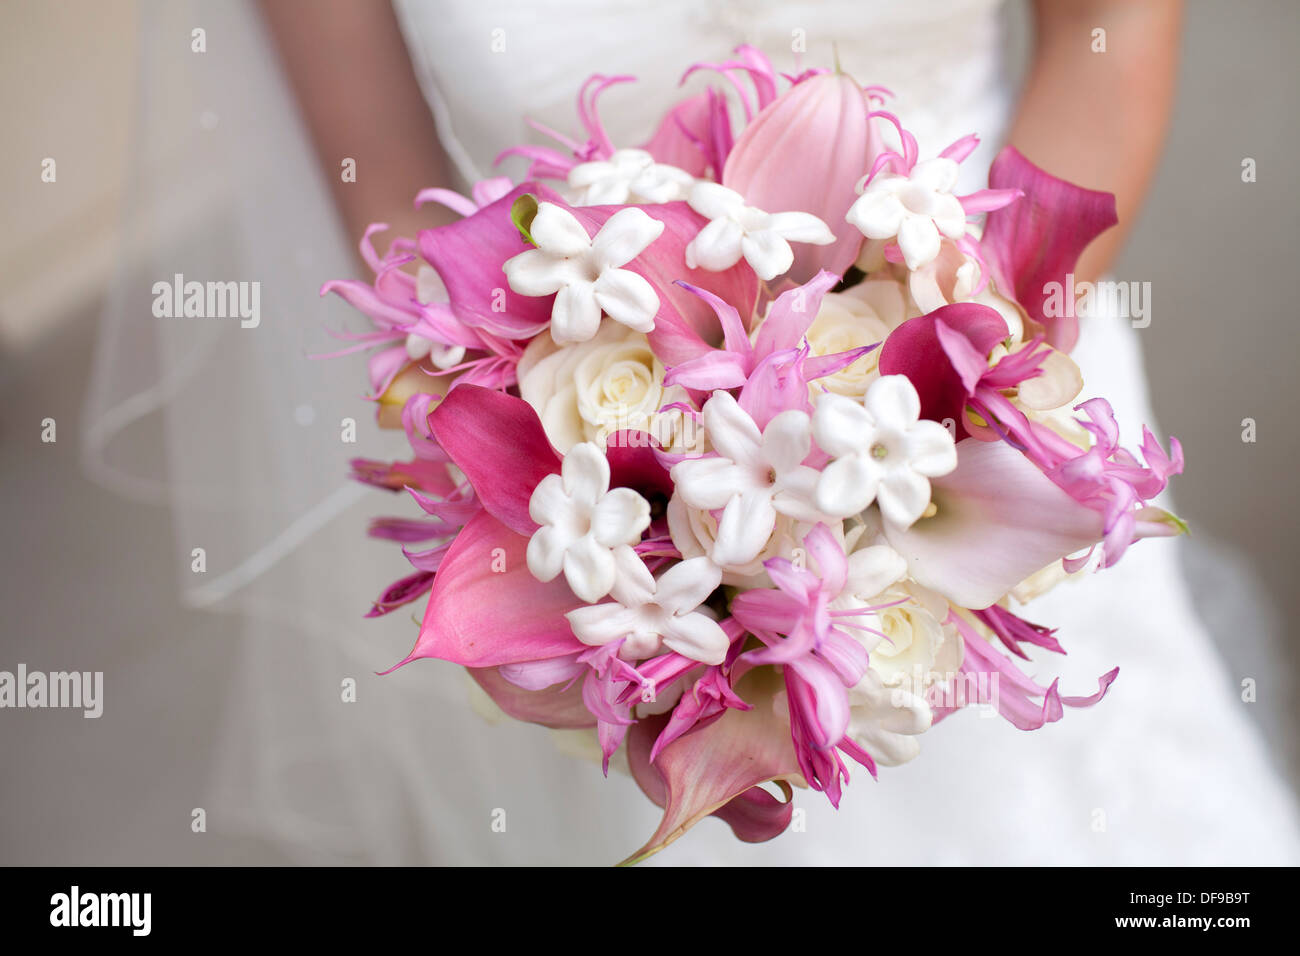 Bouquet Sposa Gigli.A Bride Clutching A Bouquet Of White Roses And Pink Lilies Stock